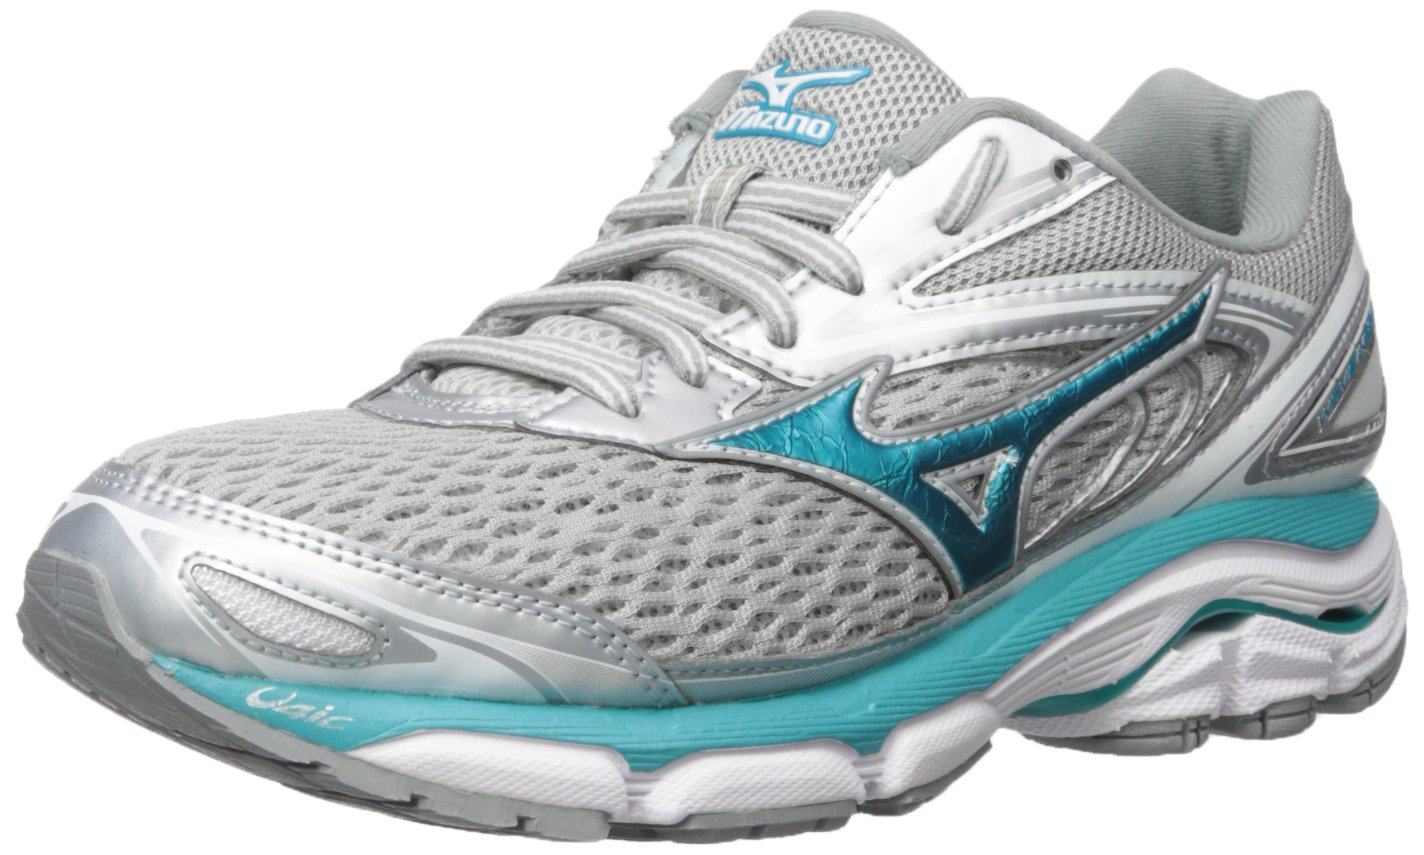 Mizuno Women's Wave Inspire 13 Running Shoe B01NGTY1J9 8.5 B(M) US|Silver/Tile Blue/Griffin